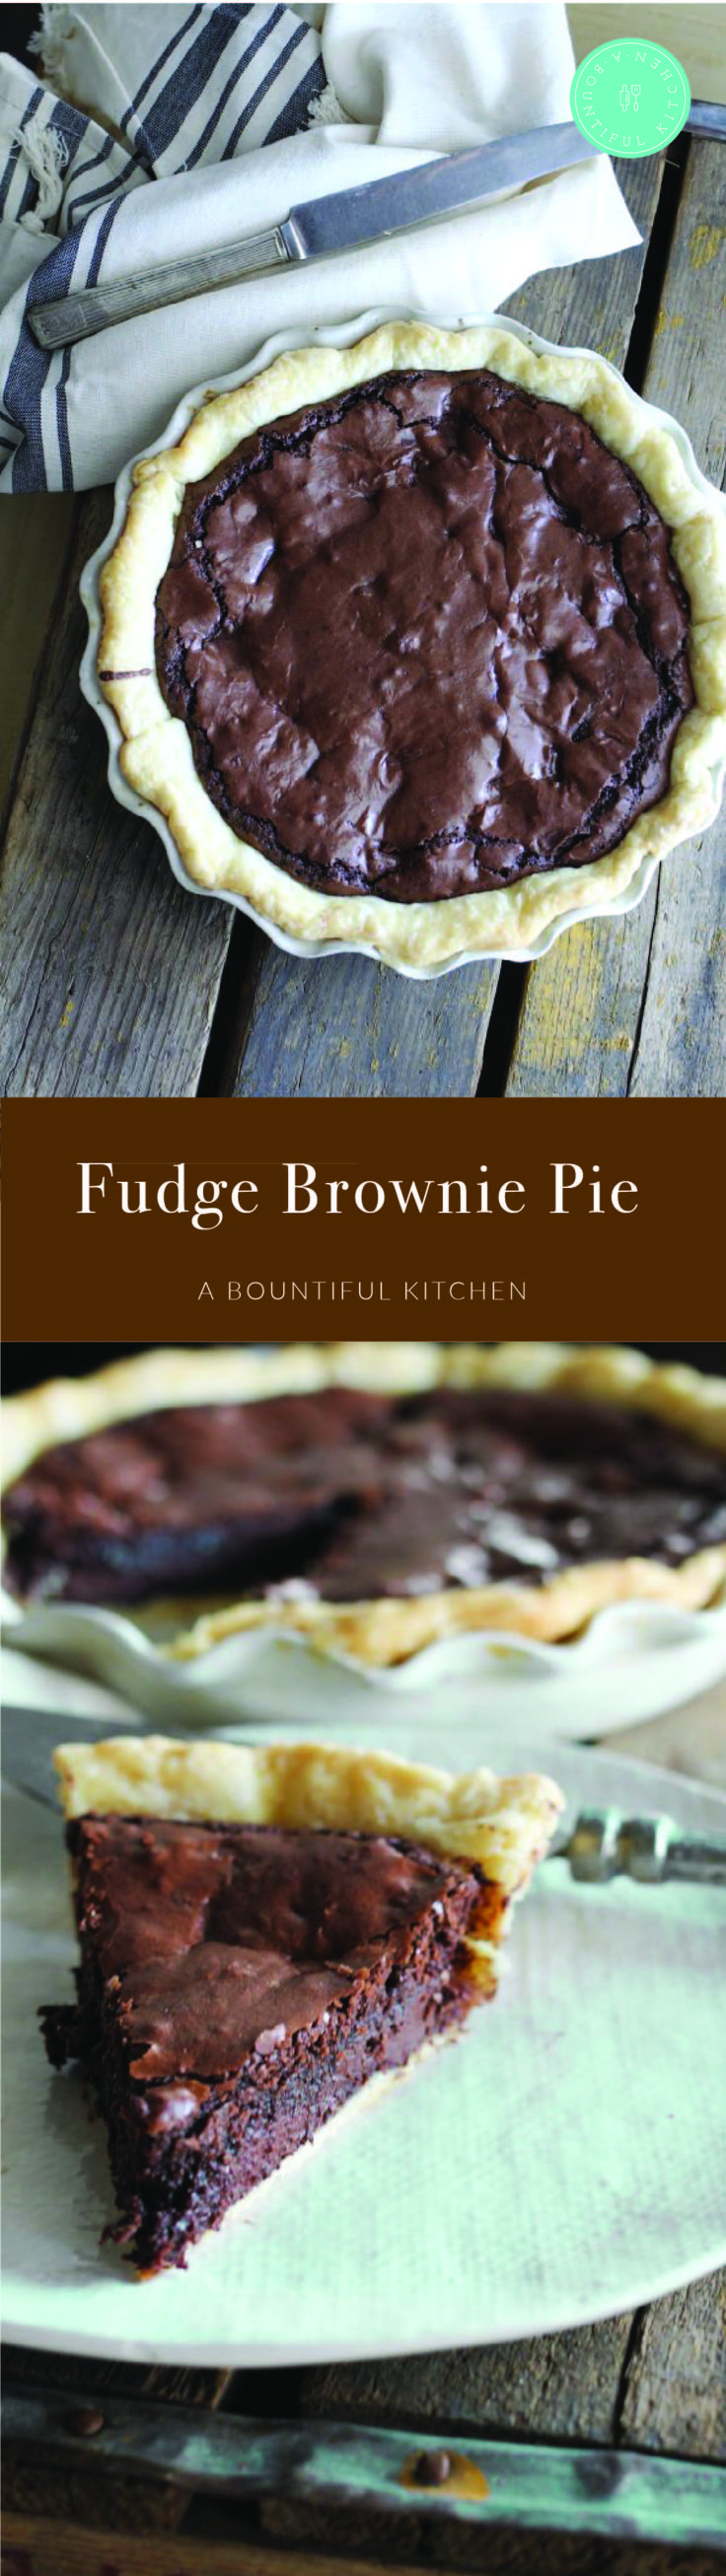 A Bountiful Kitchen: Fudge Brownie Pie - If you love brownies as much as I love brownies, you're going to love this pie. Fudge Brownie Pie is a rich chocolately brownie, baked in a flaky pie crust. #holidaybaking #chocolate #pie #thanksgiving #christmas